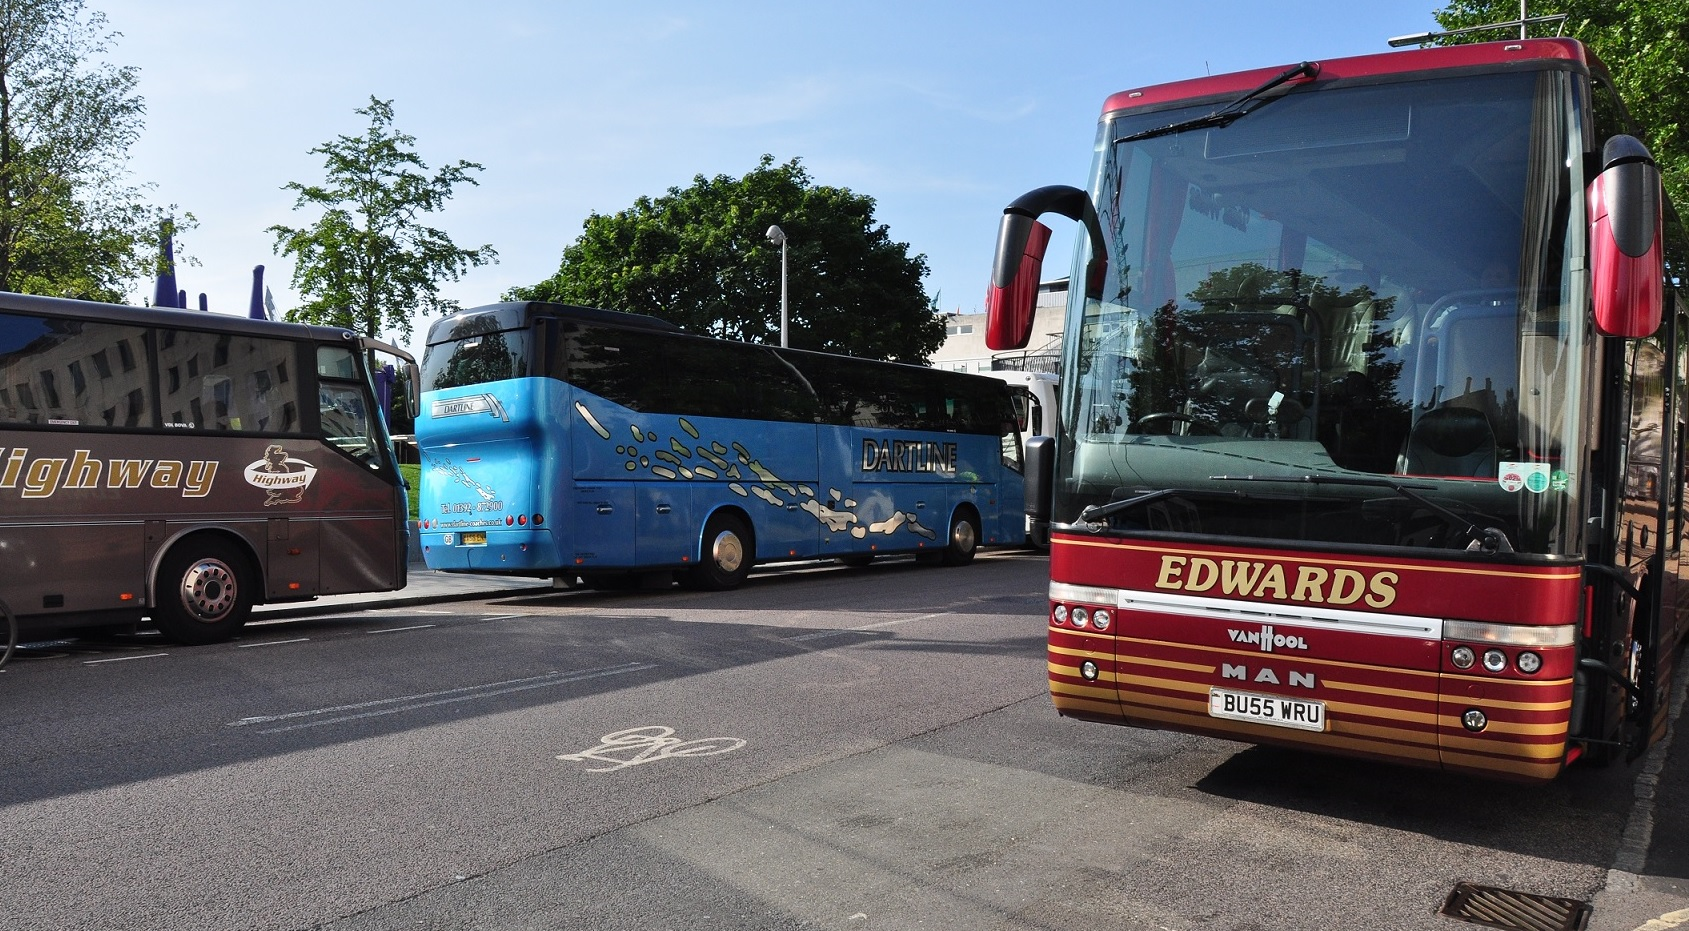 National coach network plans for December 2020